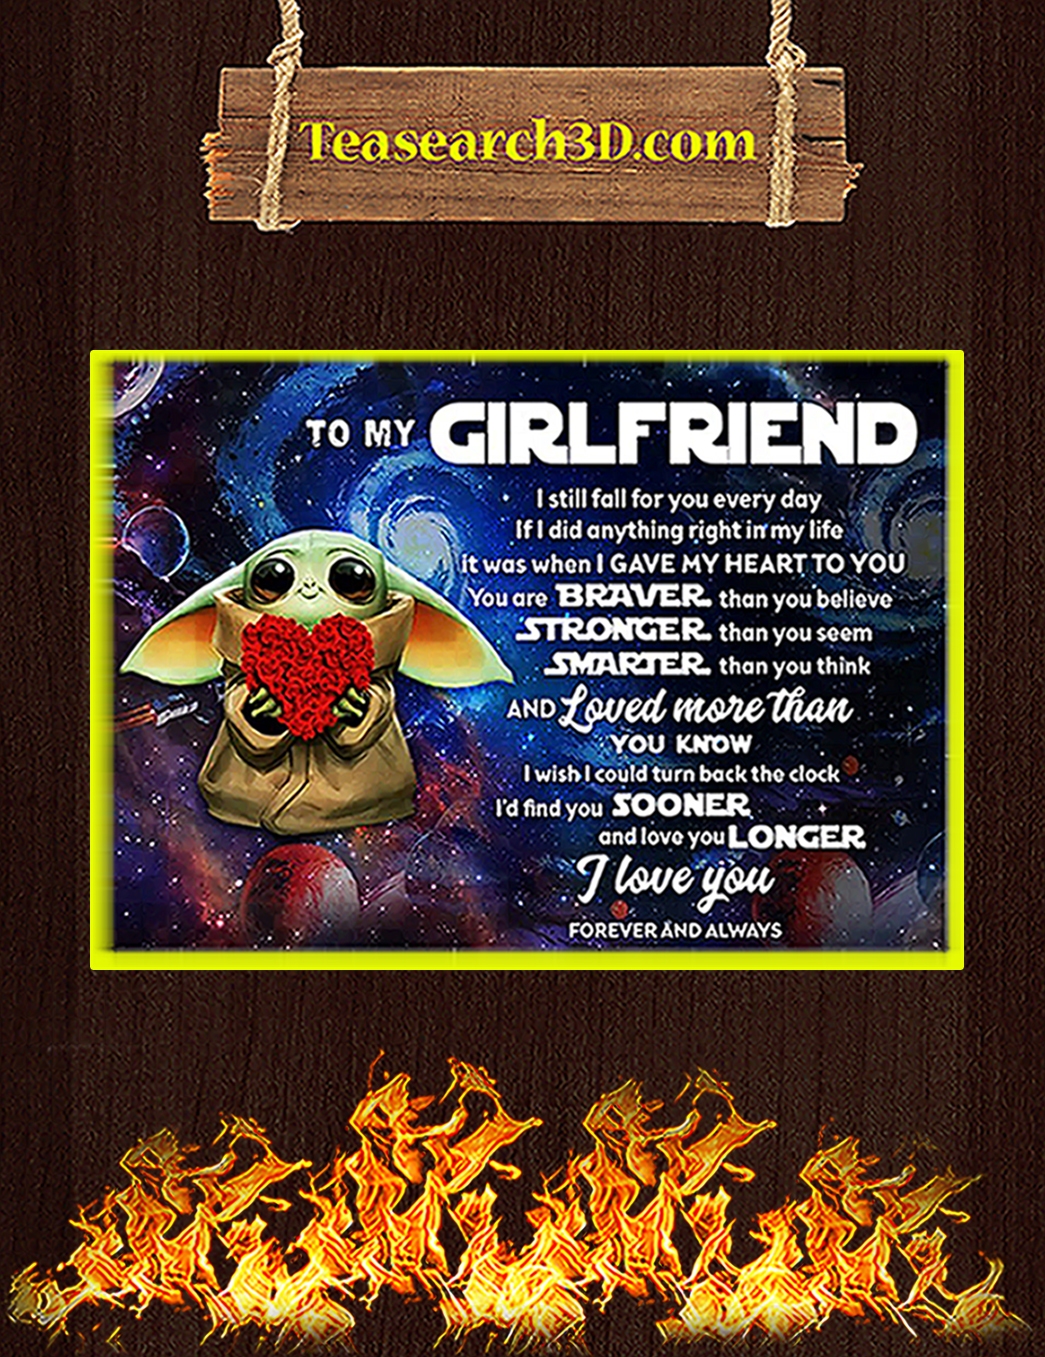 Baby yoda to my girlfriend poster A1